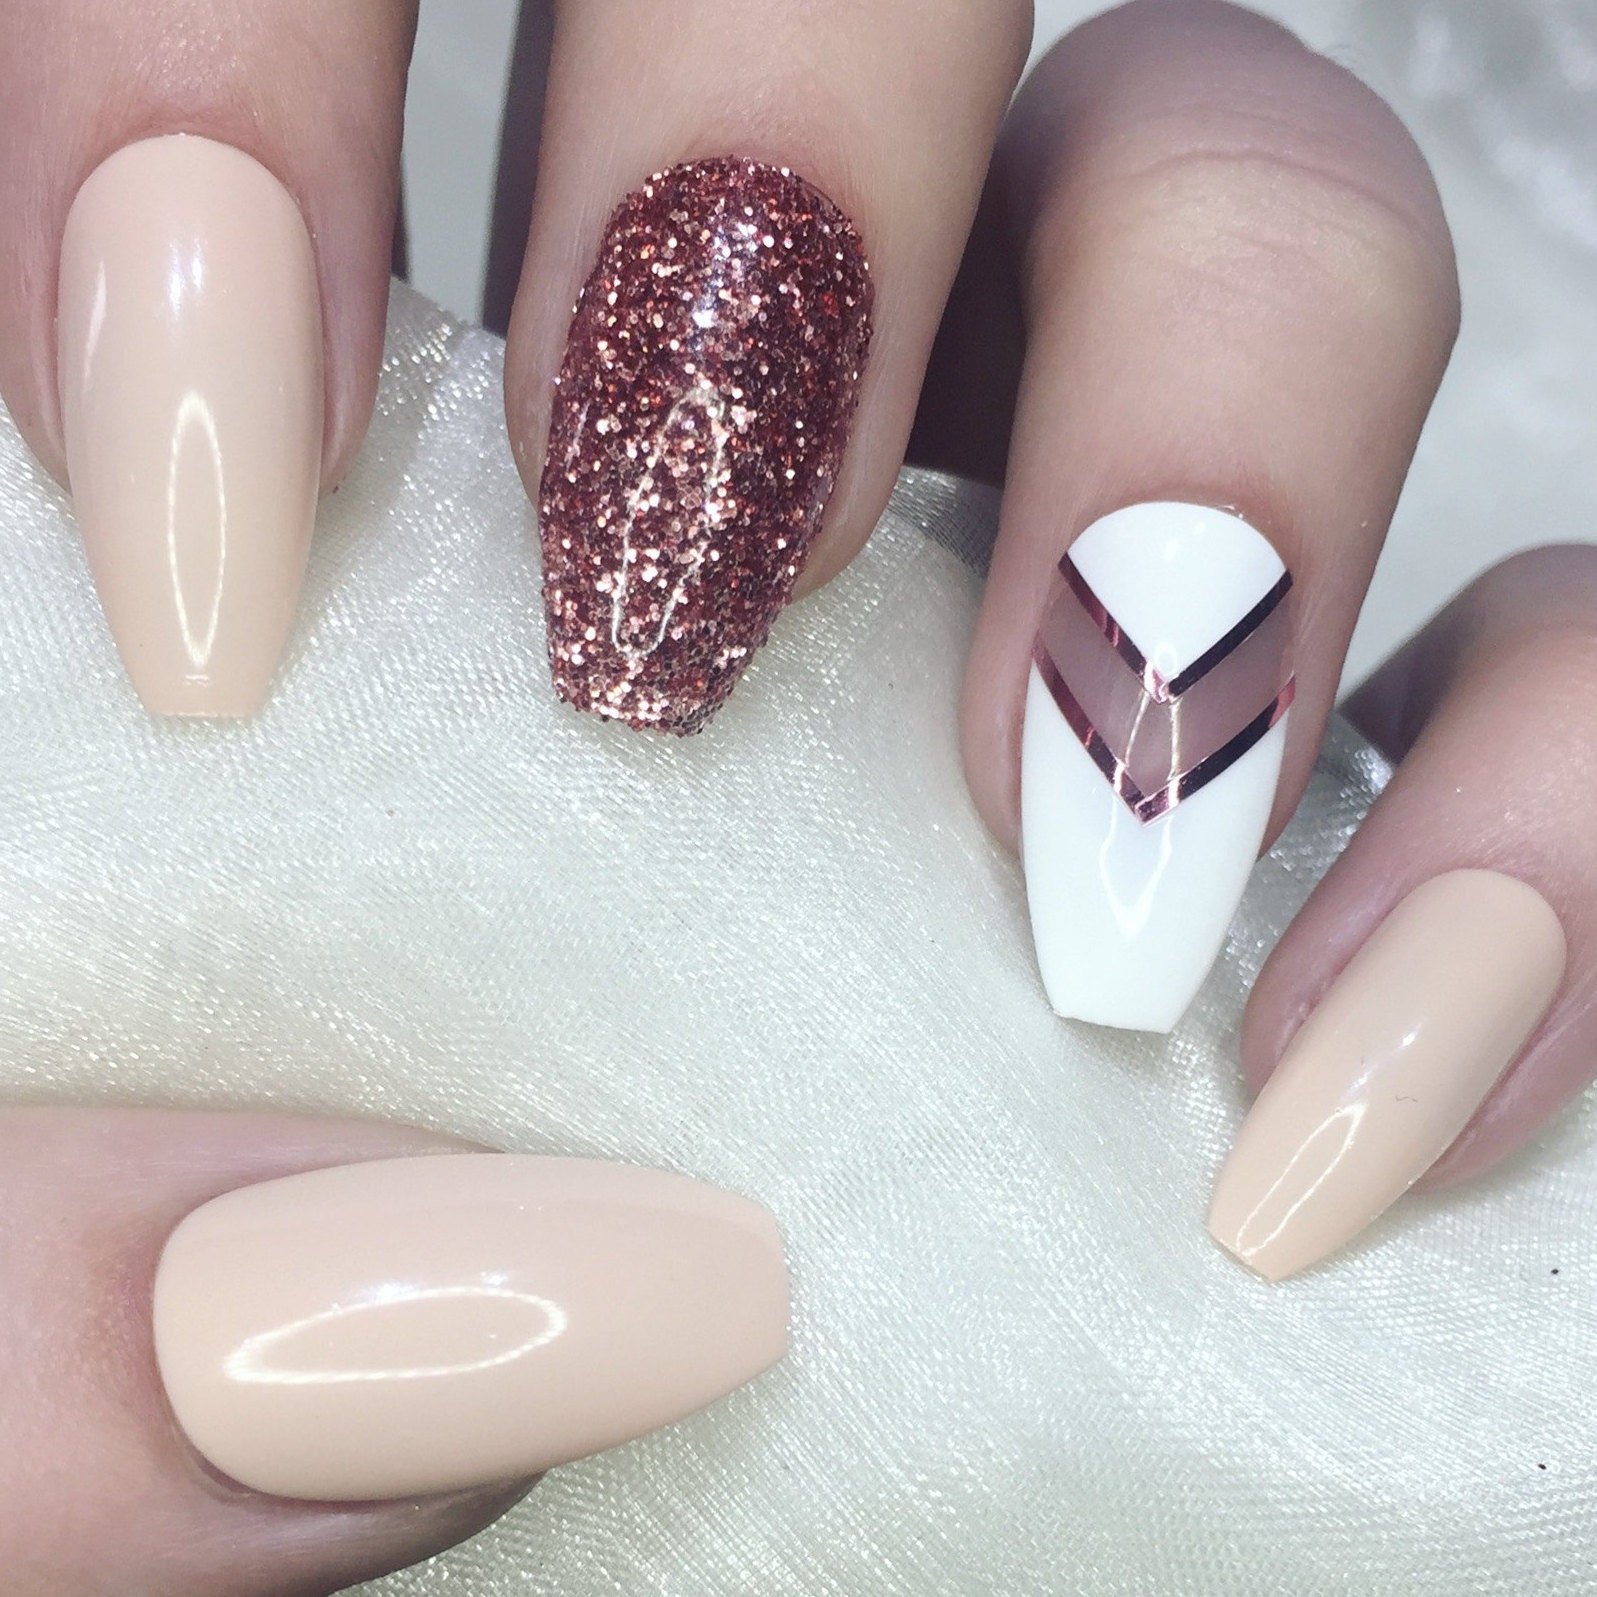 Instant press on manicure for any occasion by nailartbygeorgia